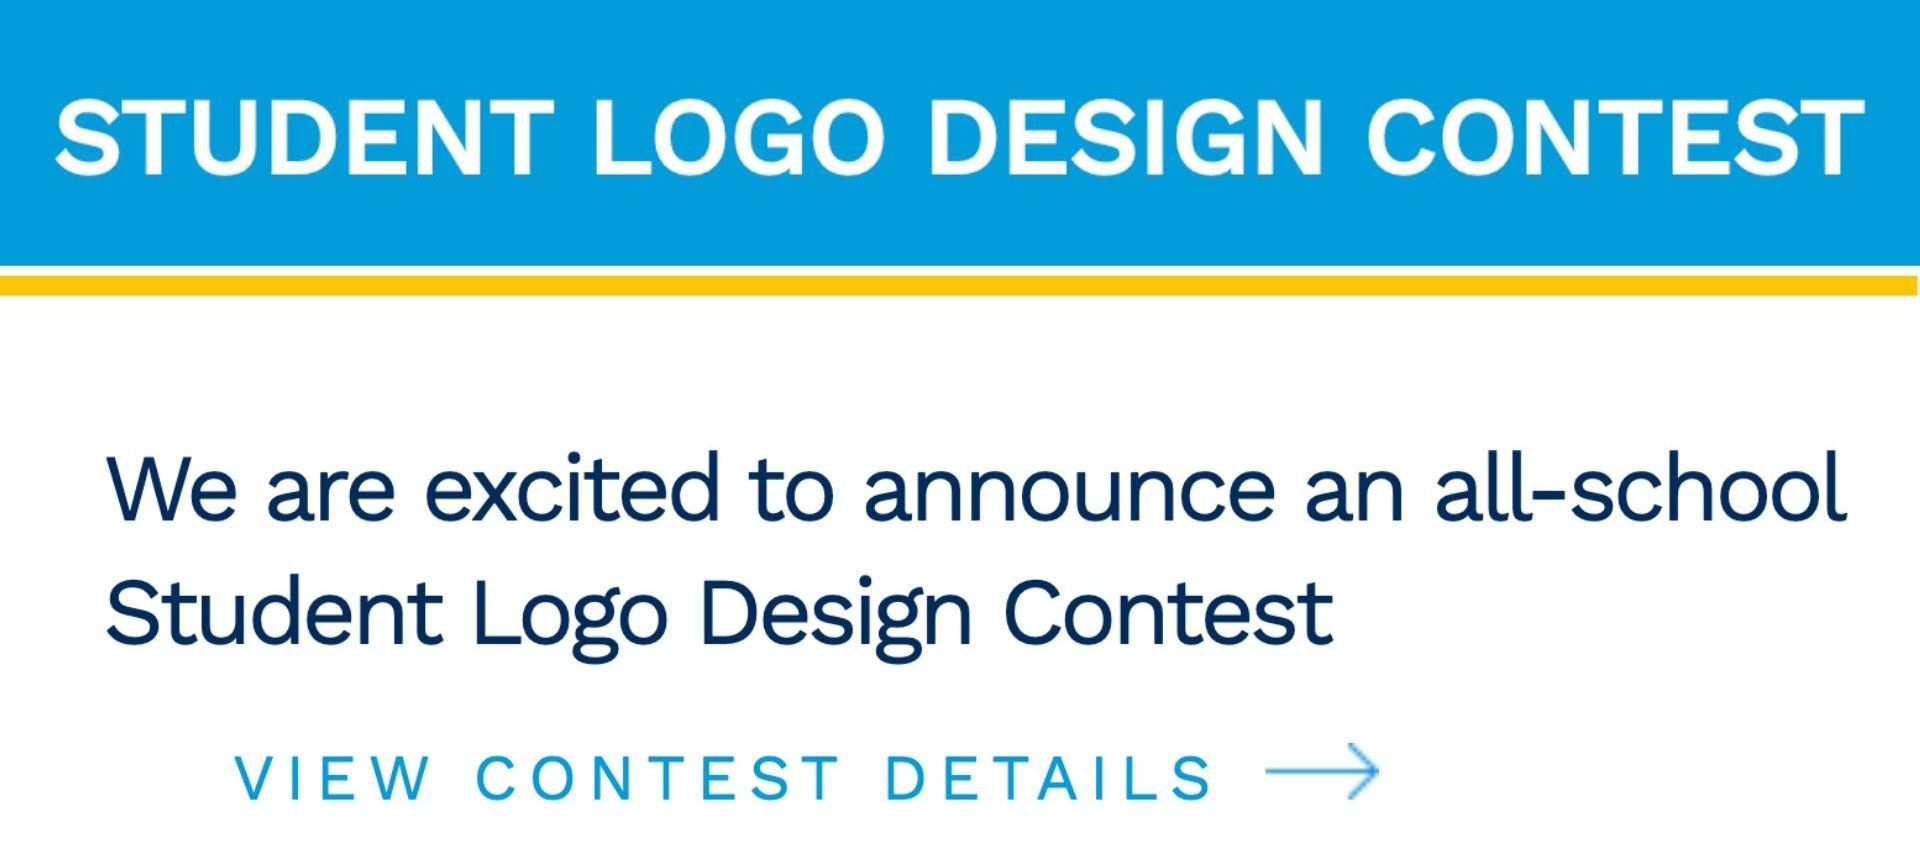 We are excited to announce an all-school Student Logo Design Contest